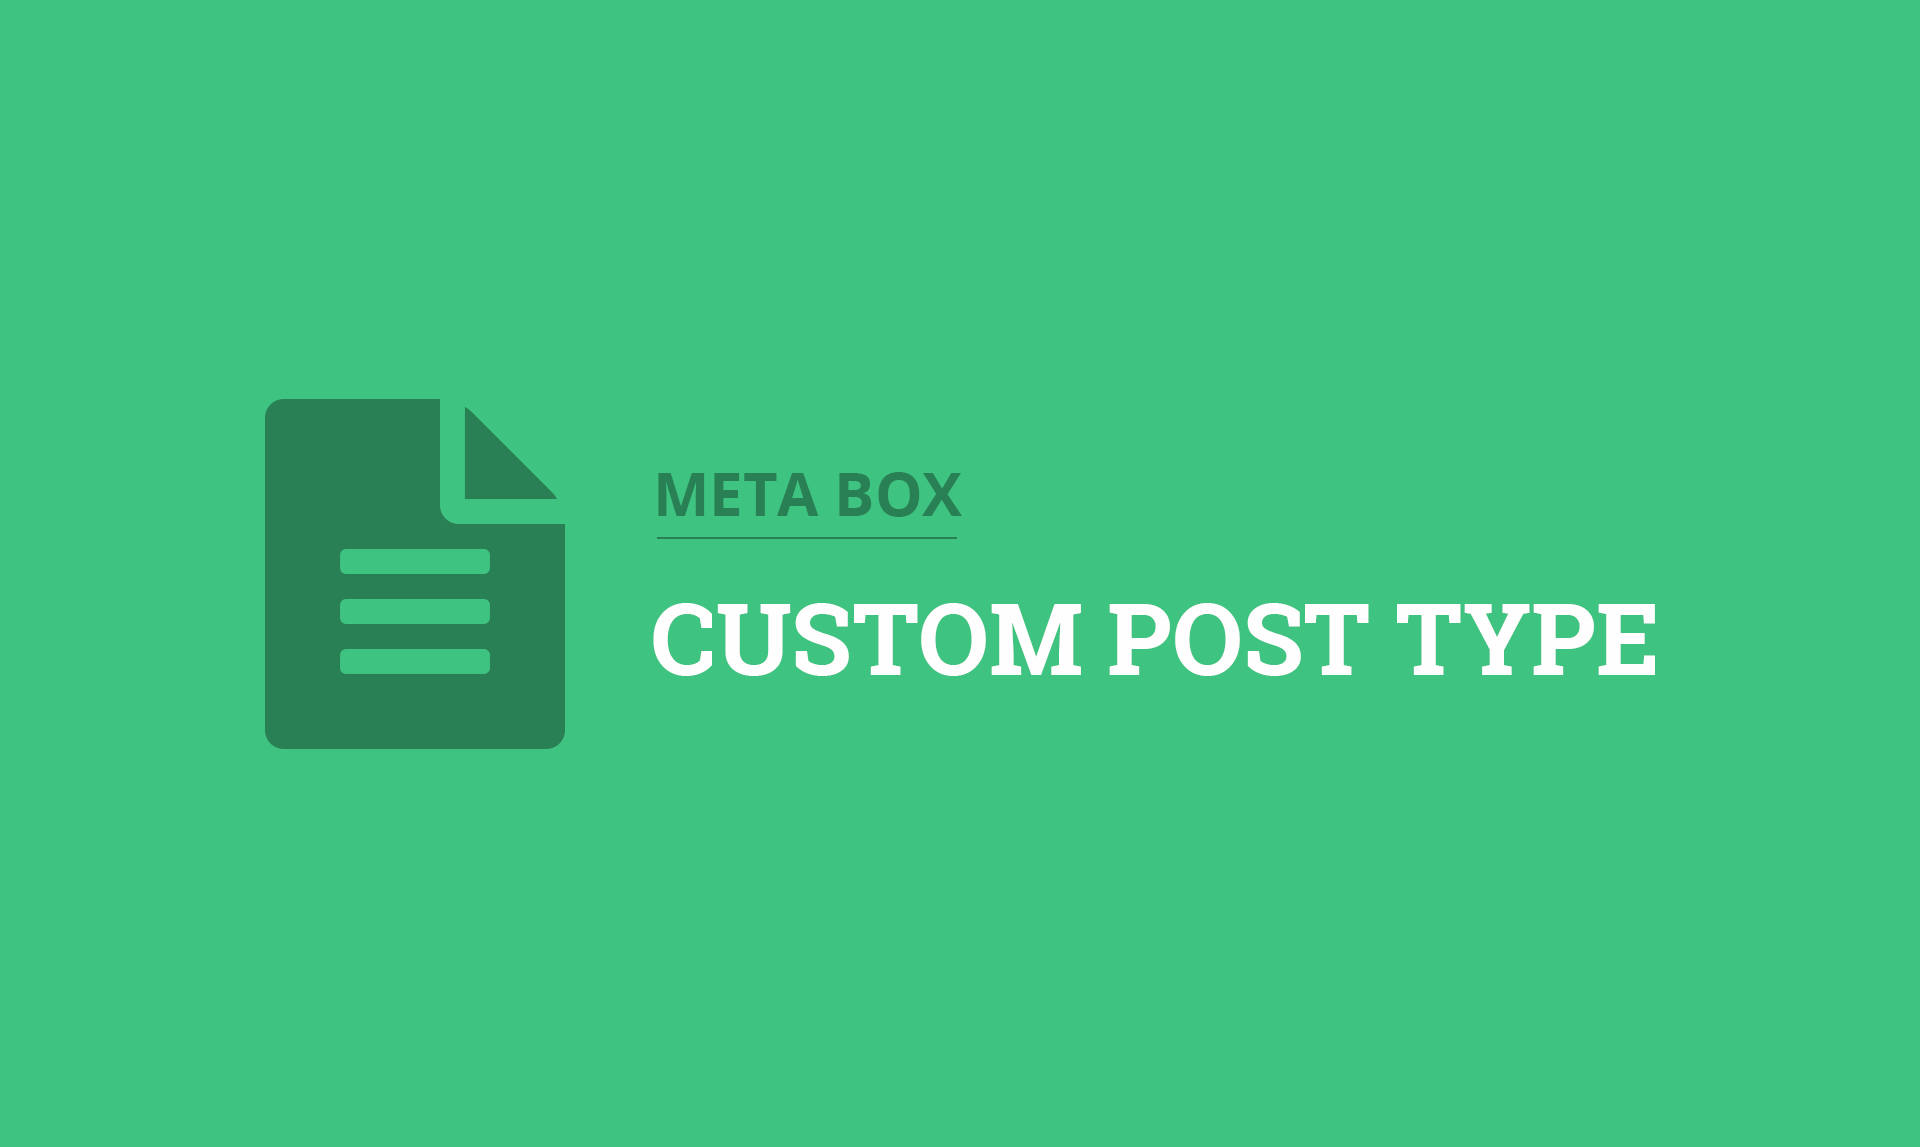 MB Custom Post Type